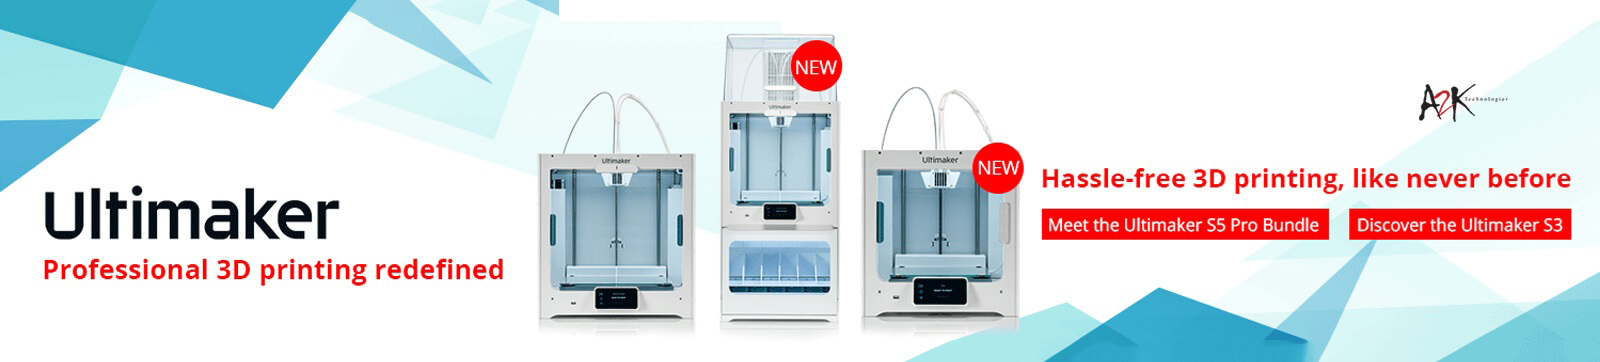 Ultimaker New Lineup